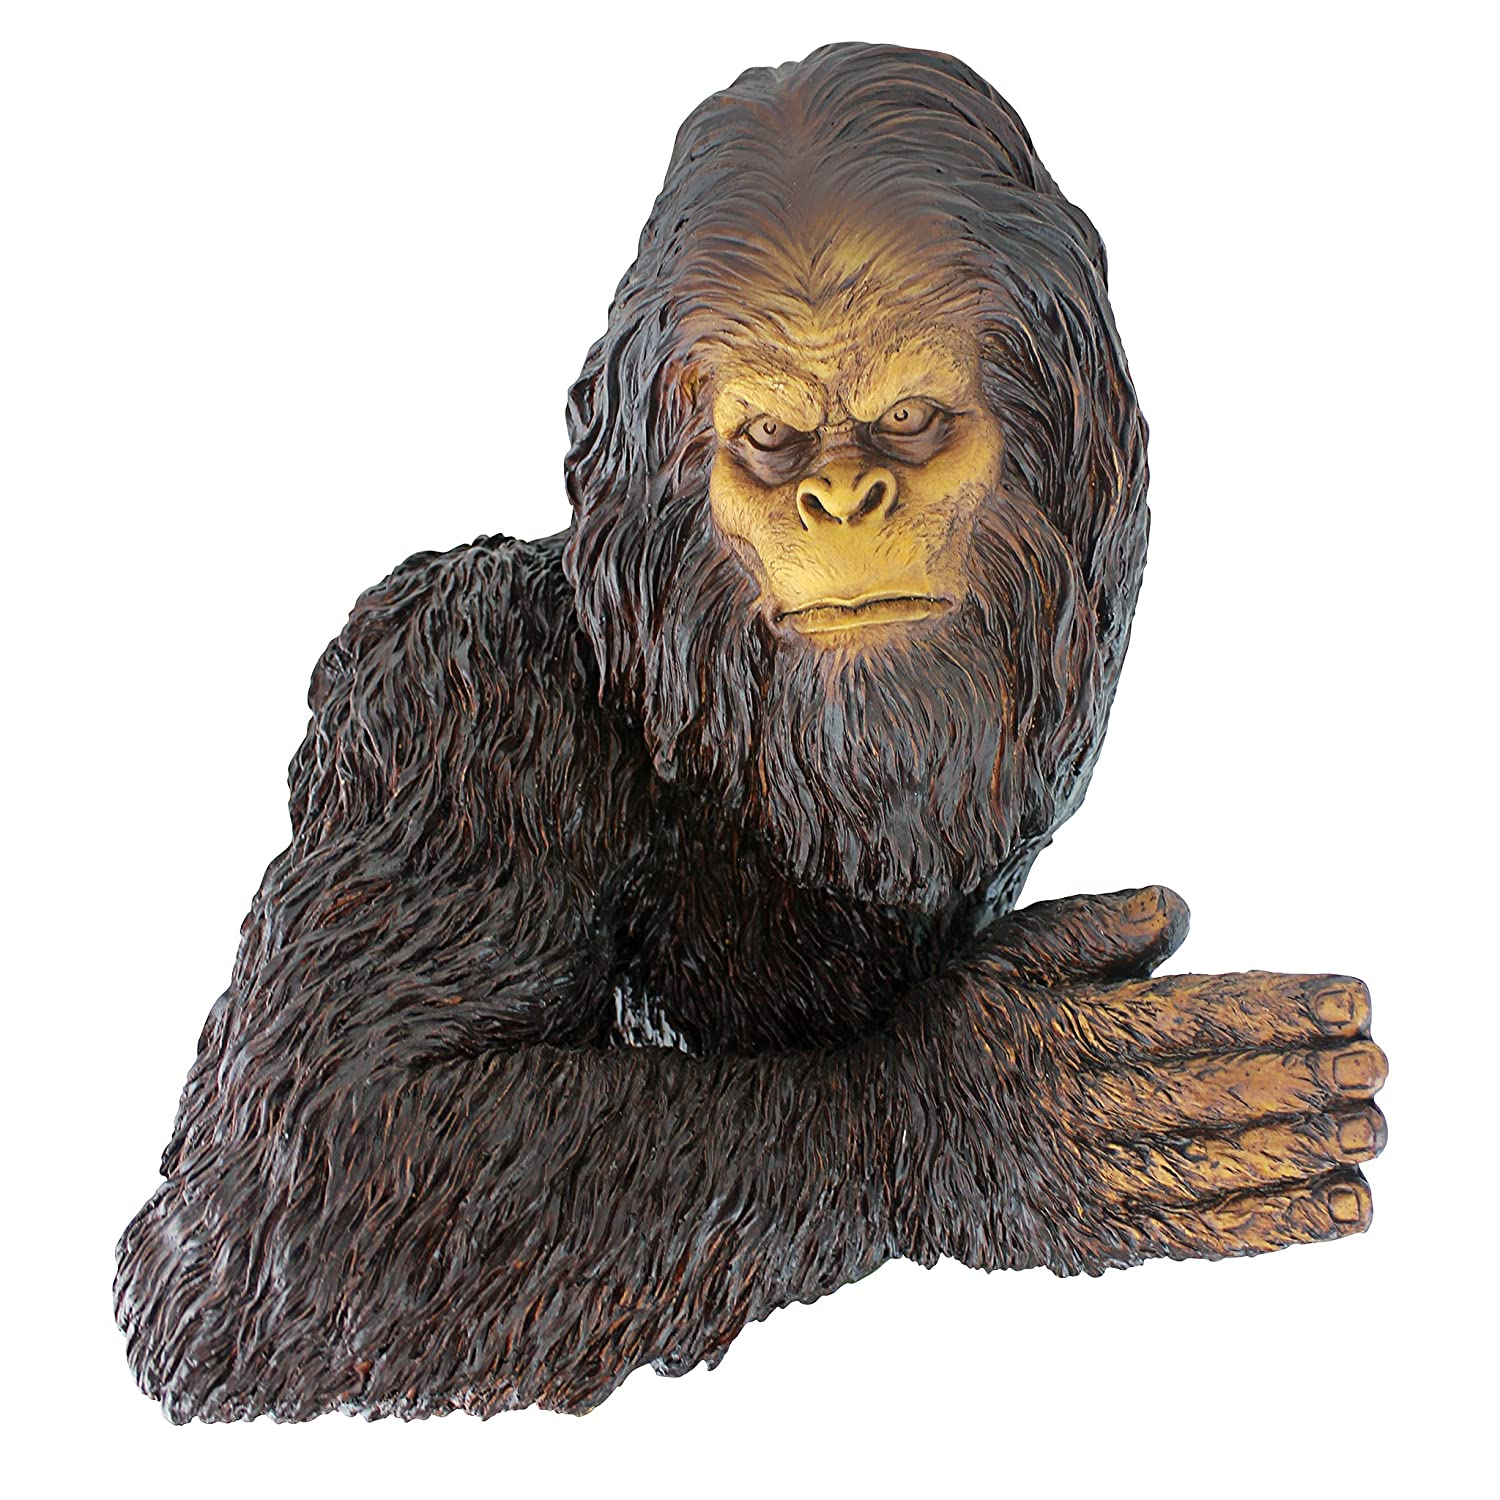 Design Toscano Bigfoot, the Bashful Yeti Tree Sculpture: Under 11 Diameter Trees